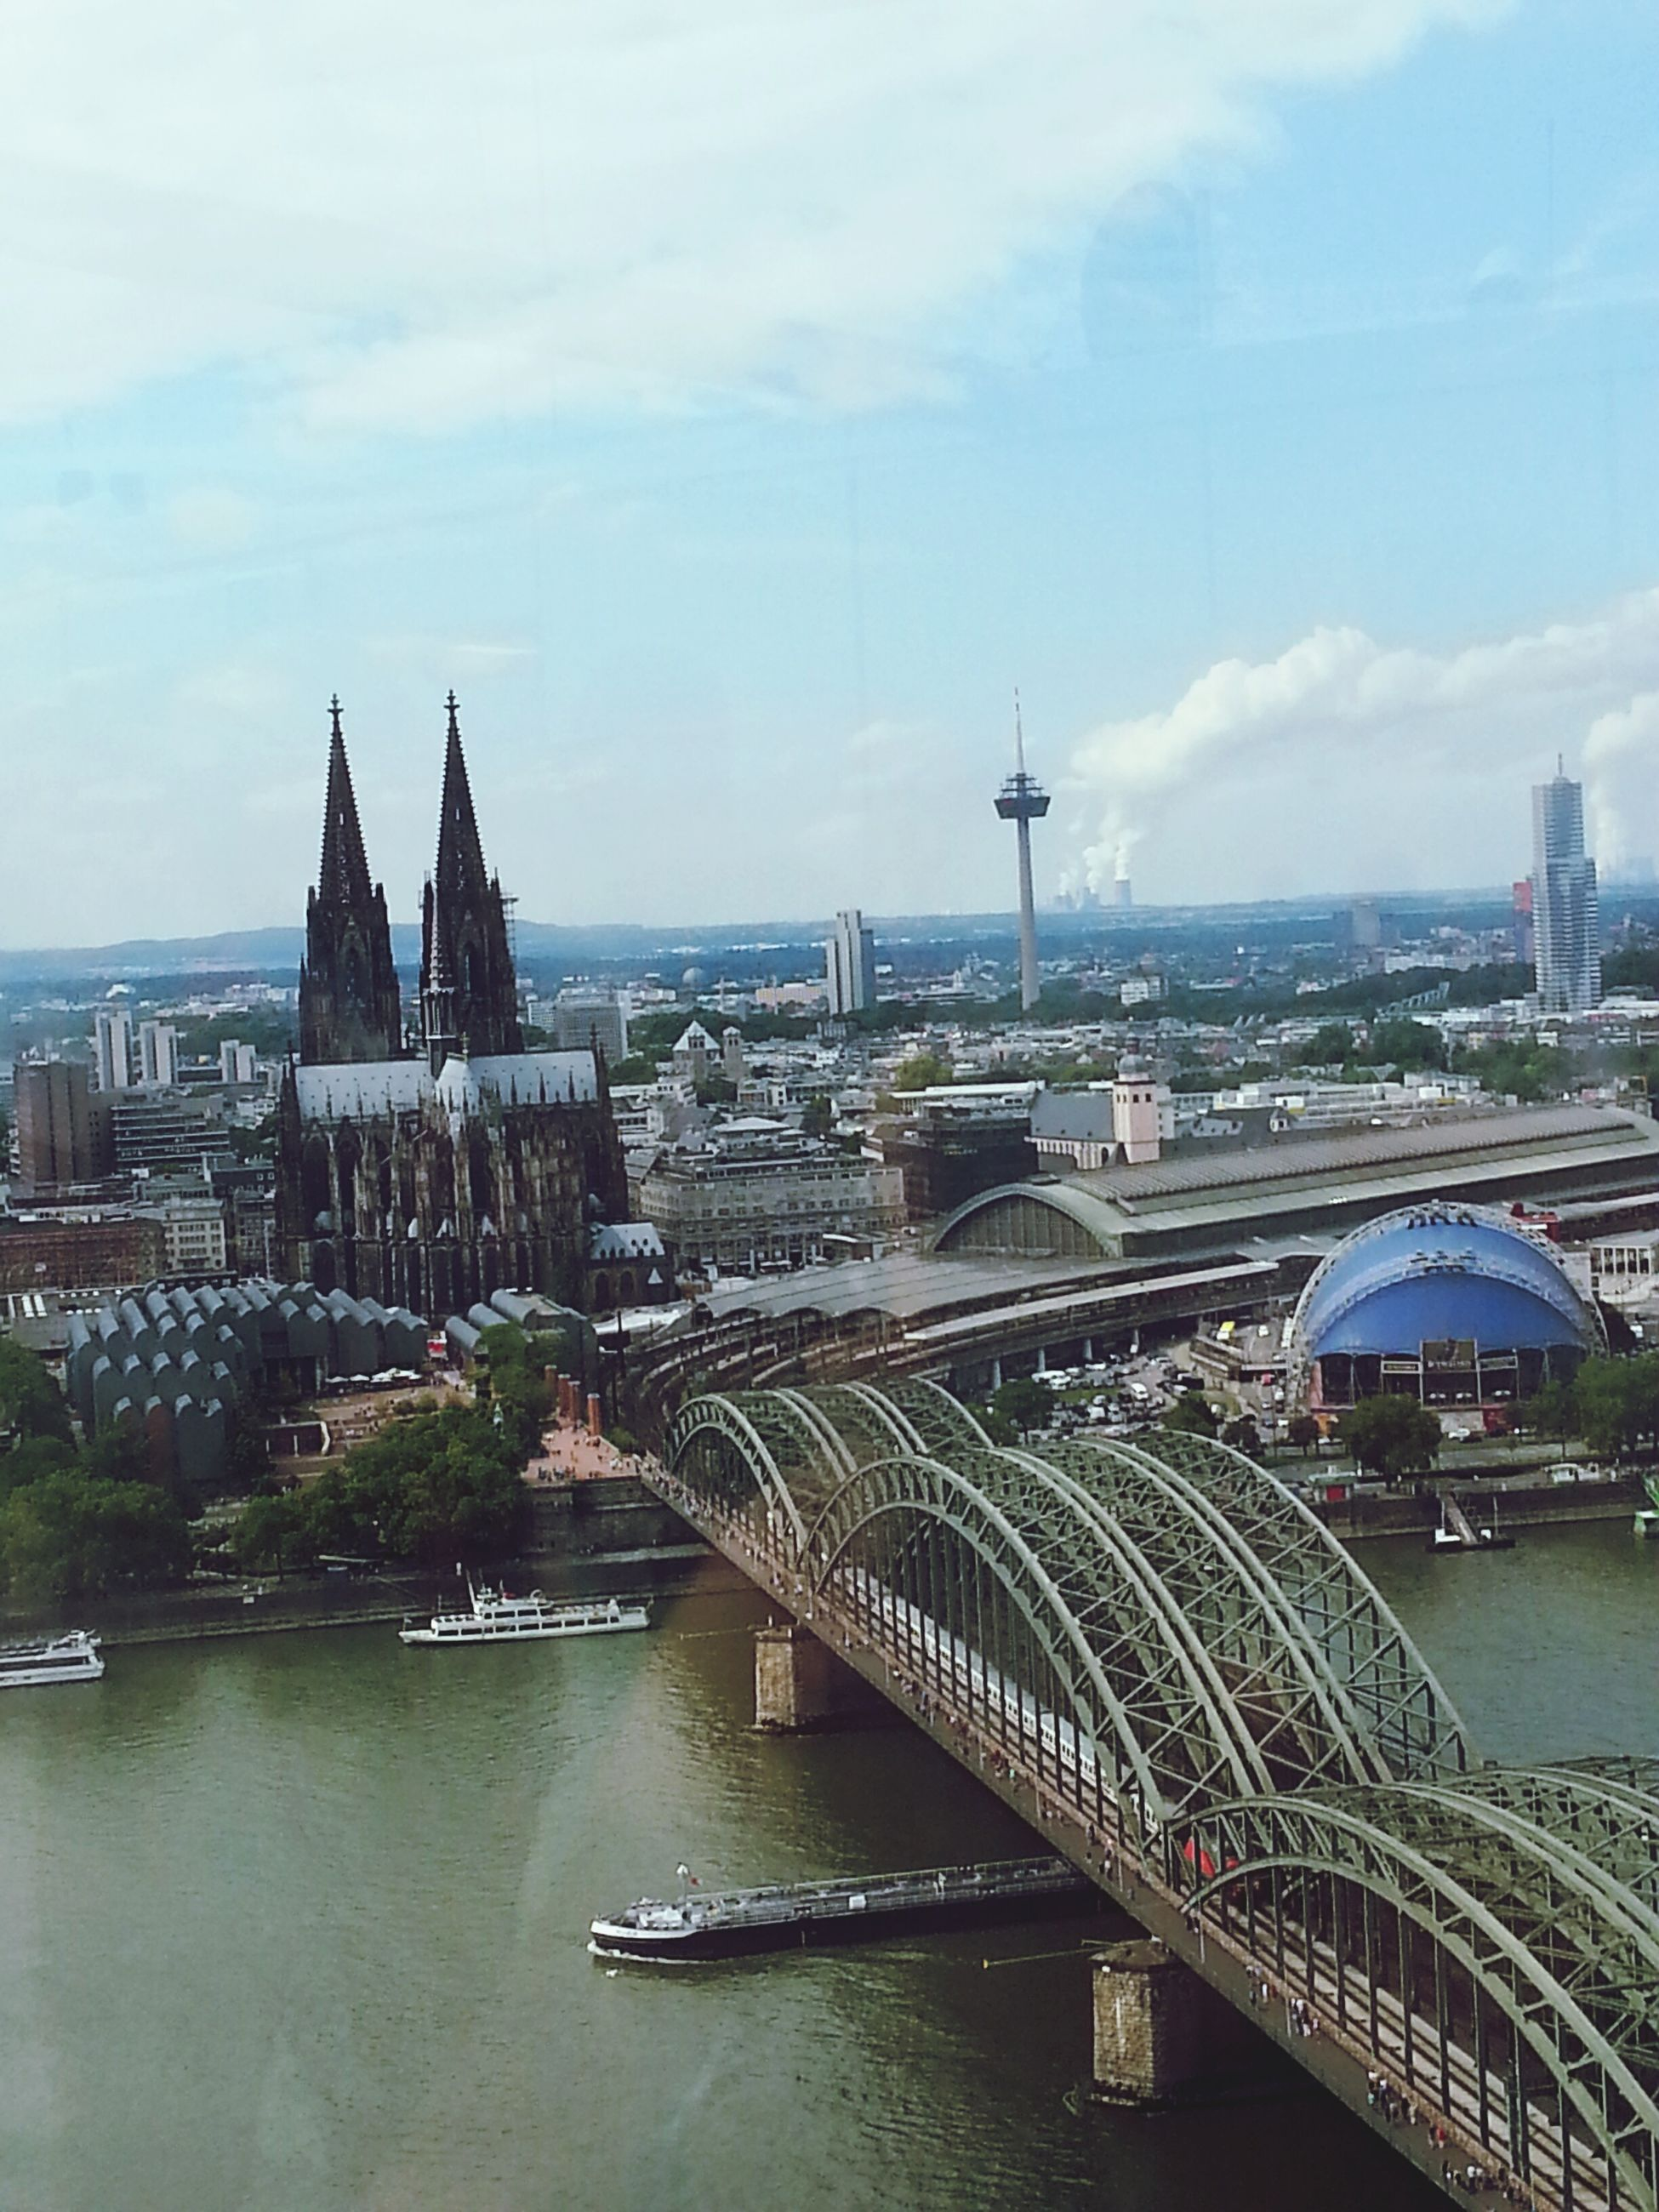 architecture, built structure, building exterior, water, city, sky, river, transportation, cityscape, high angle view, cloud - sky, bridge - man made structure, connection, mode of transport, travel, travel destinations, day, outdoors, city life, canal